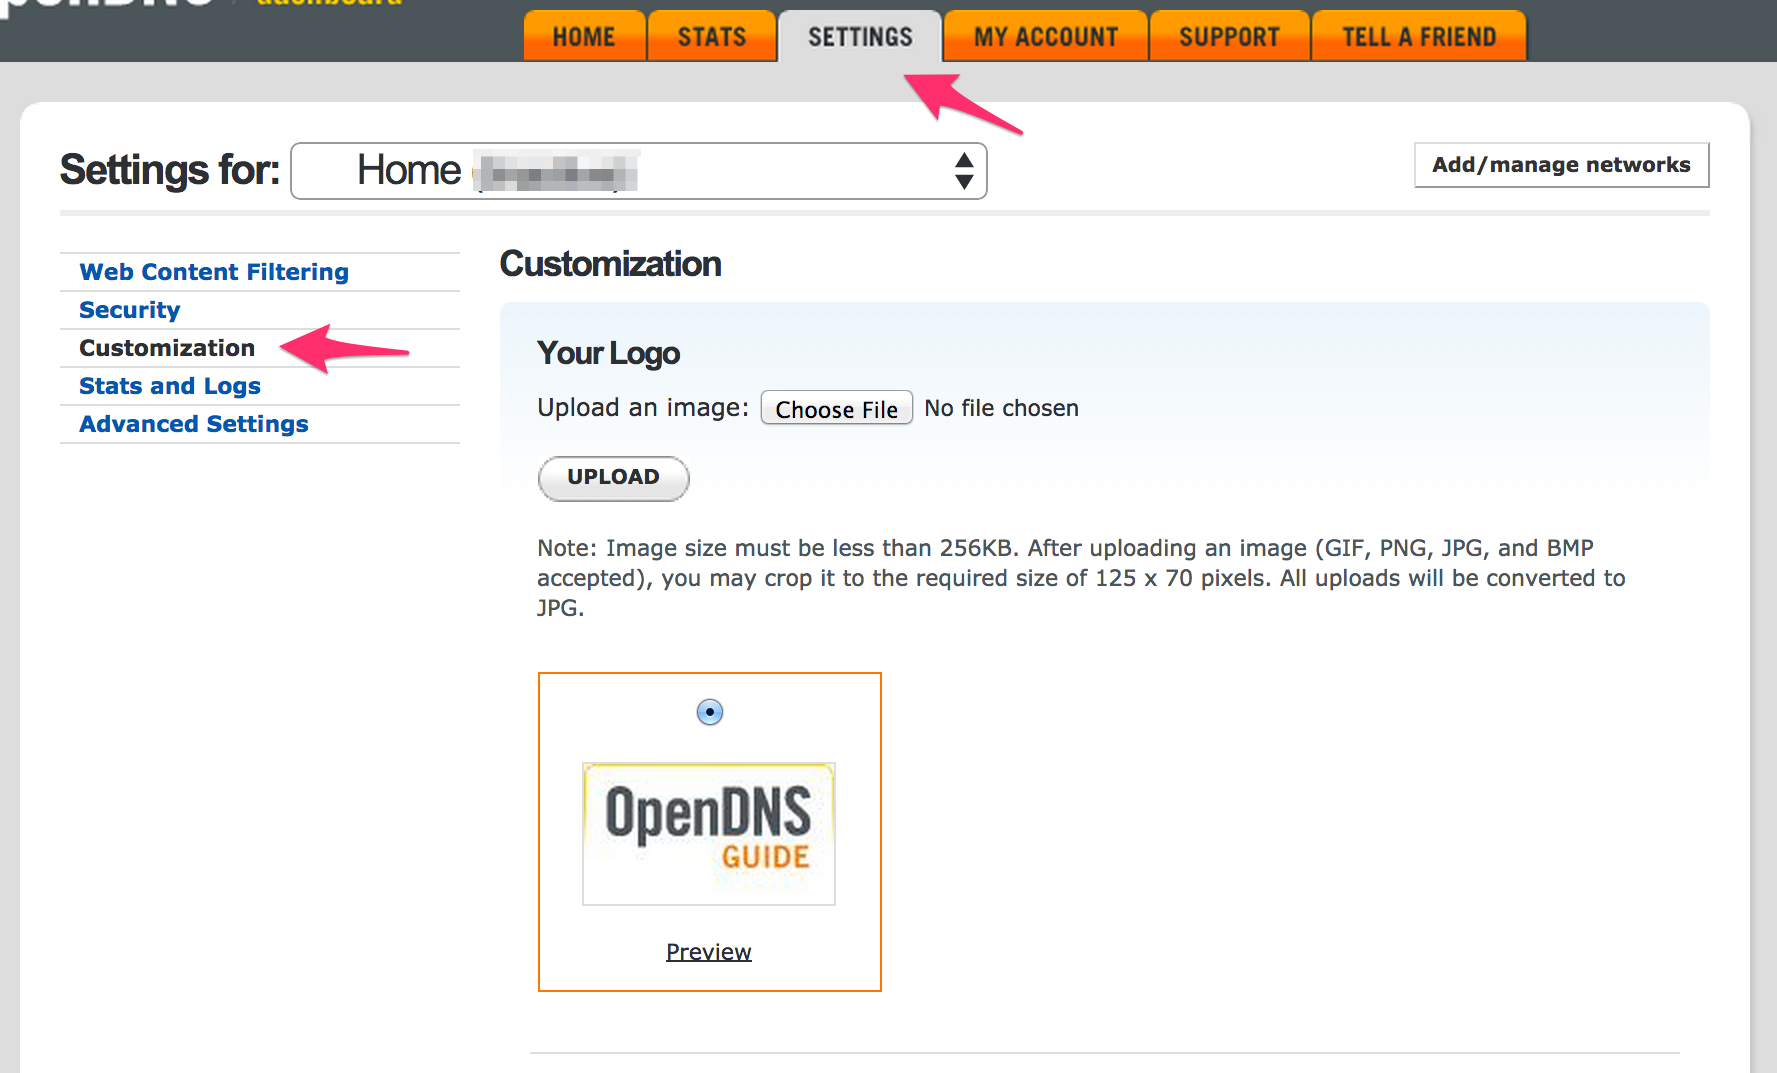 OpenDNS_Dashboard___Settings___Customization.png